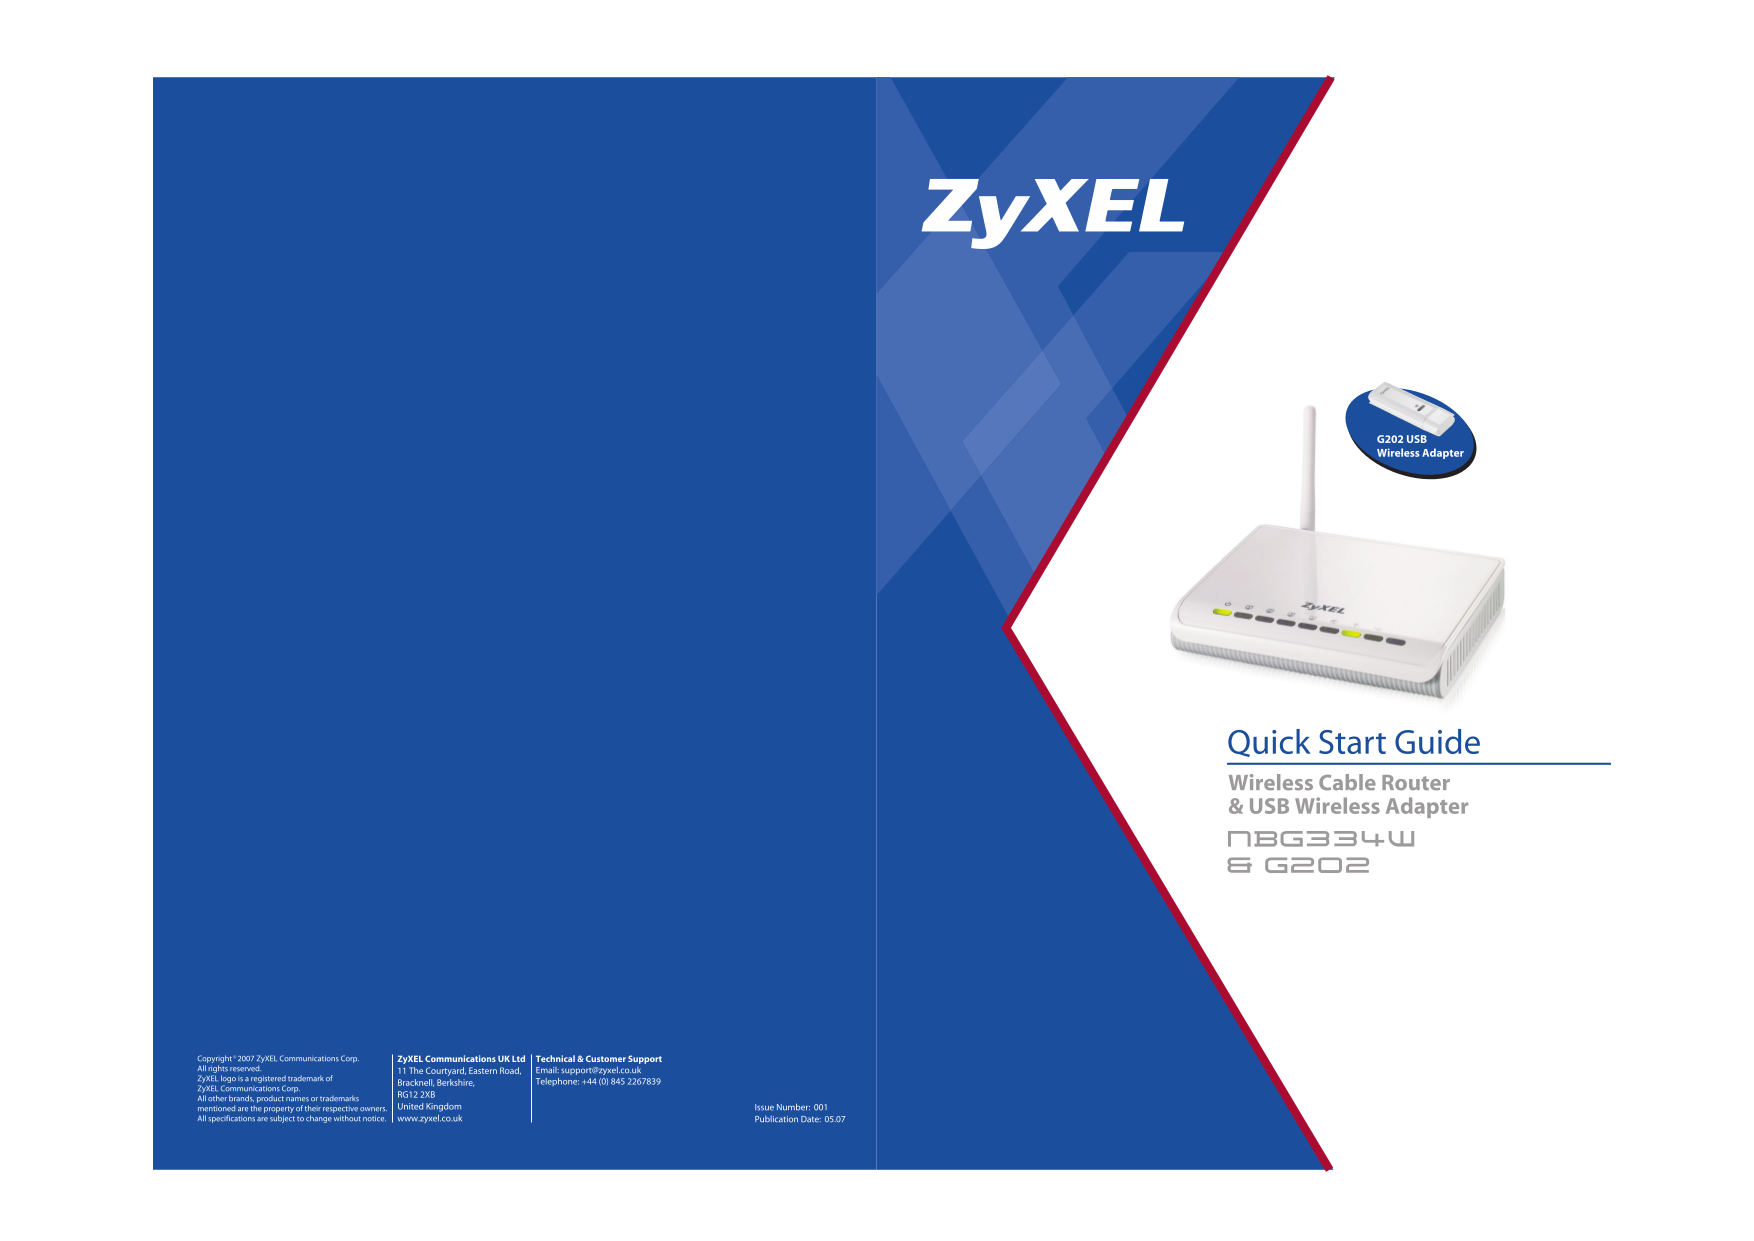 HOW TO INSTALL ZYXEL G-202 DRIVER FOR PC